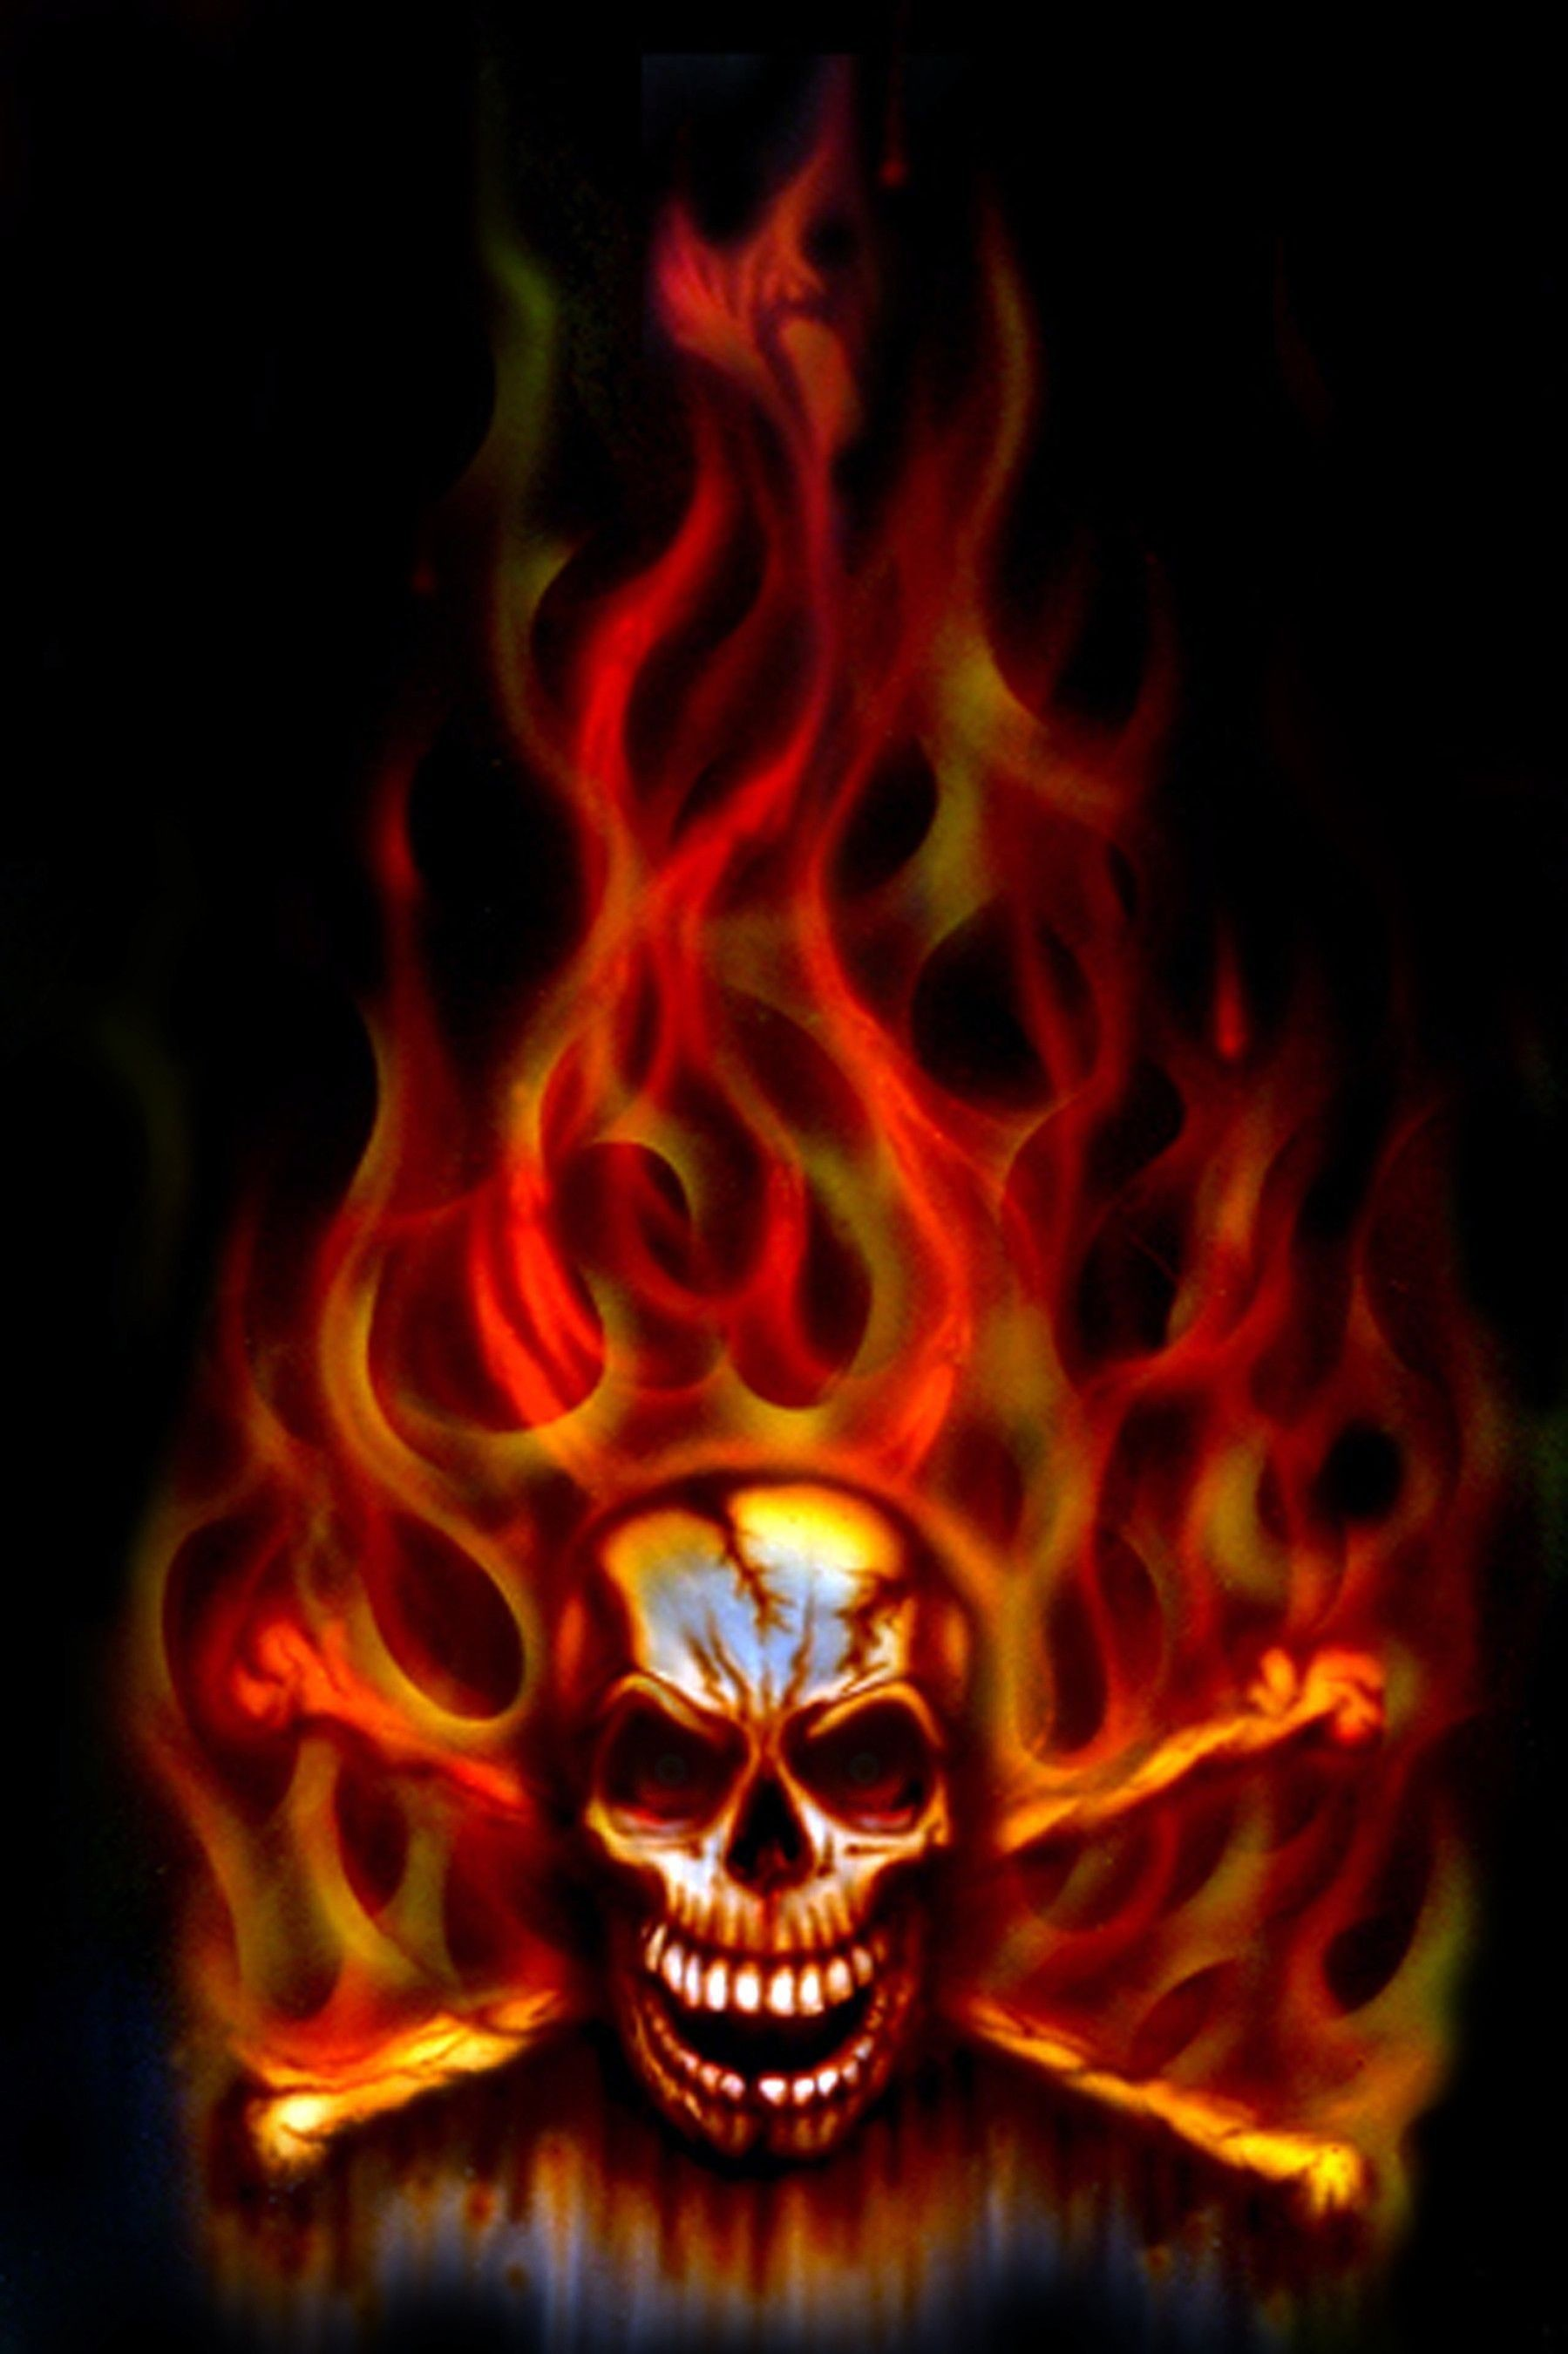 Fire Skulls Wallpapers Hd Wallpaper Collections